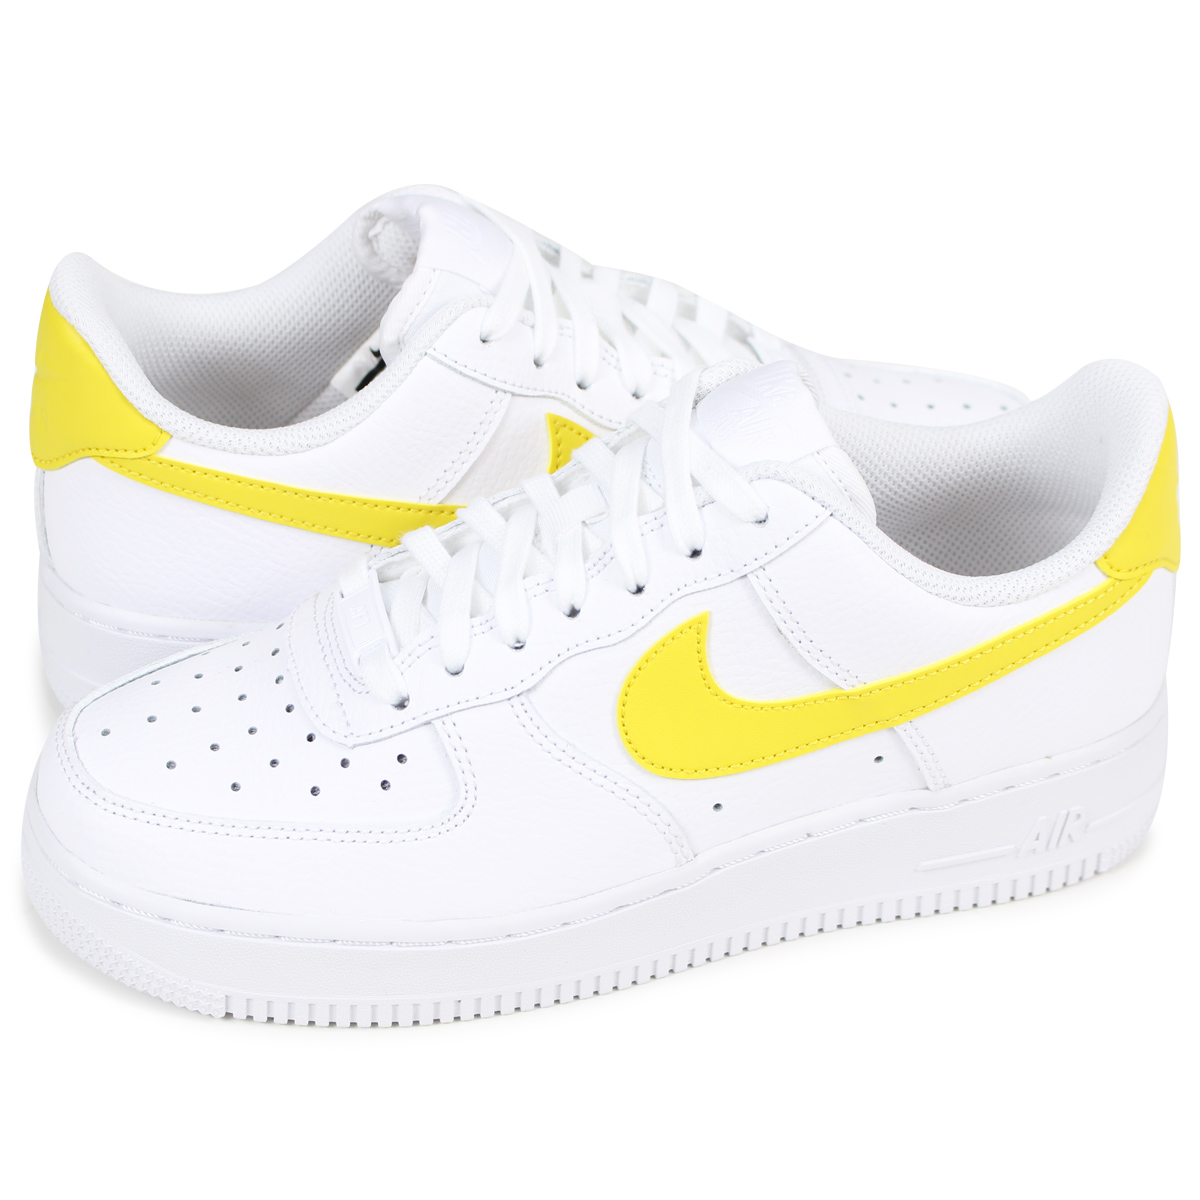 15c8778c232 Whats up Sports  NIKE WMNS AIR FORCE 1 Nike air force 1 07 lady s sneakers  315